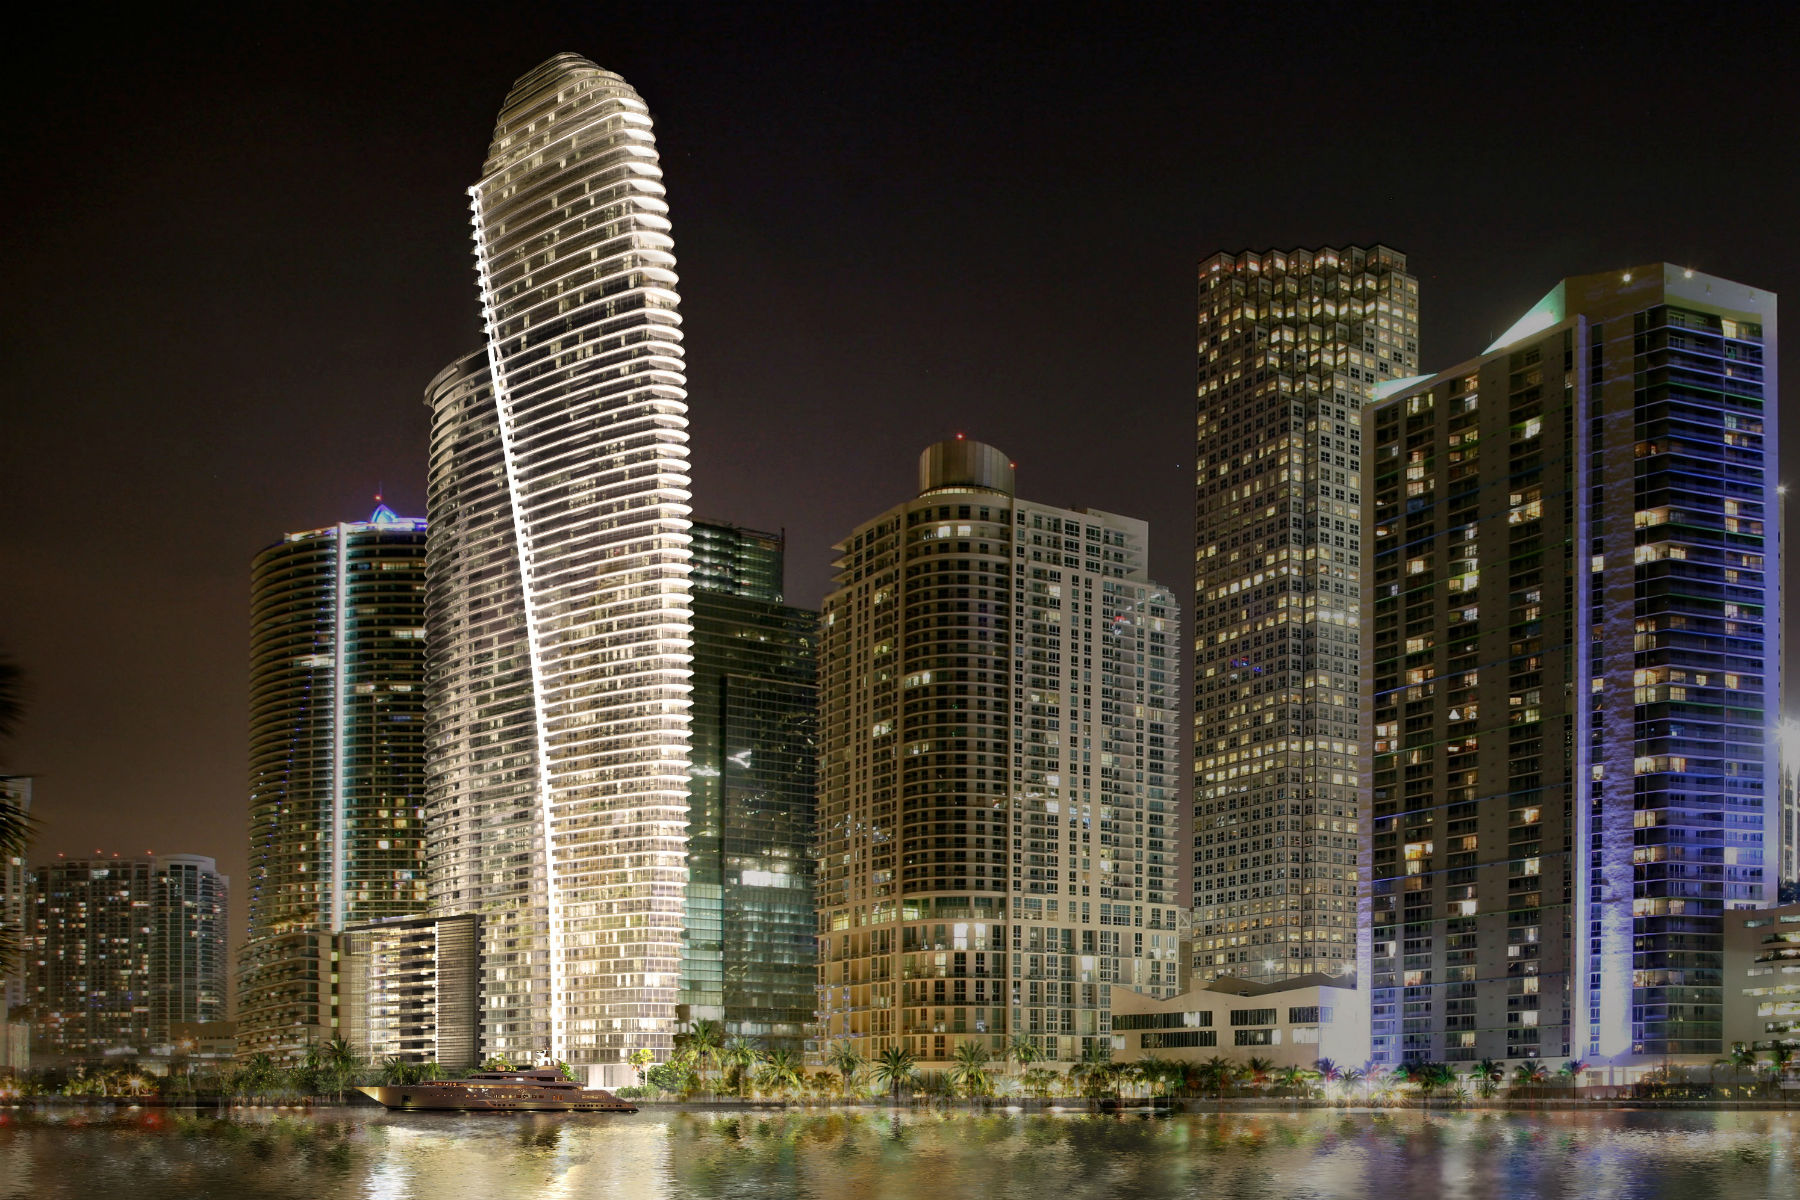 Aston Martin is building a posh block of flats in Miami